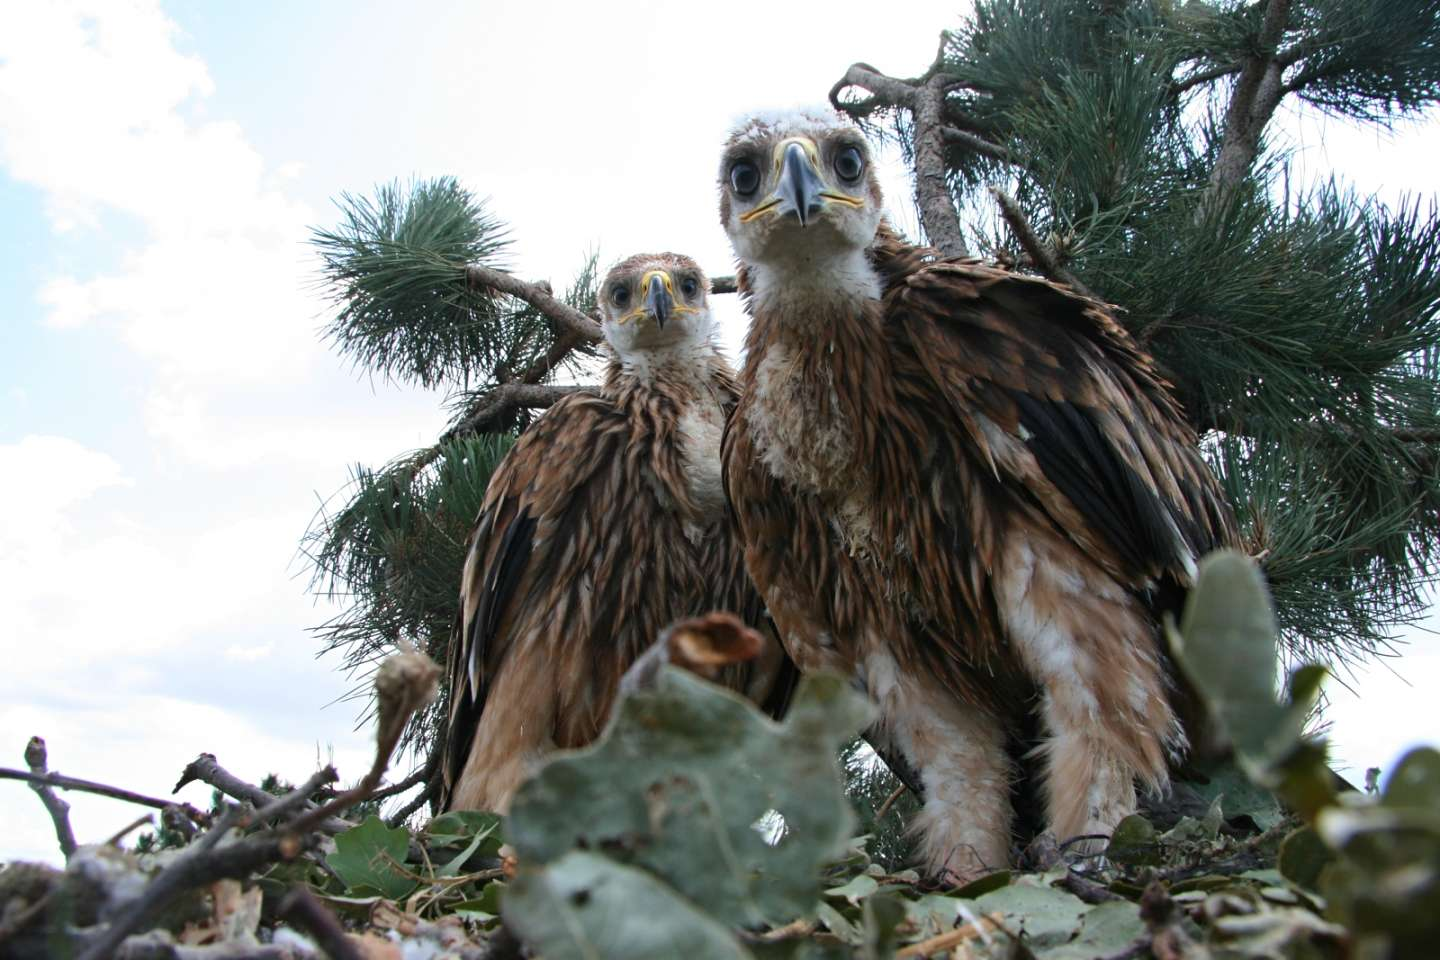 Nestling of Imperial Eagle became adoptive parents